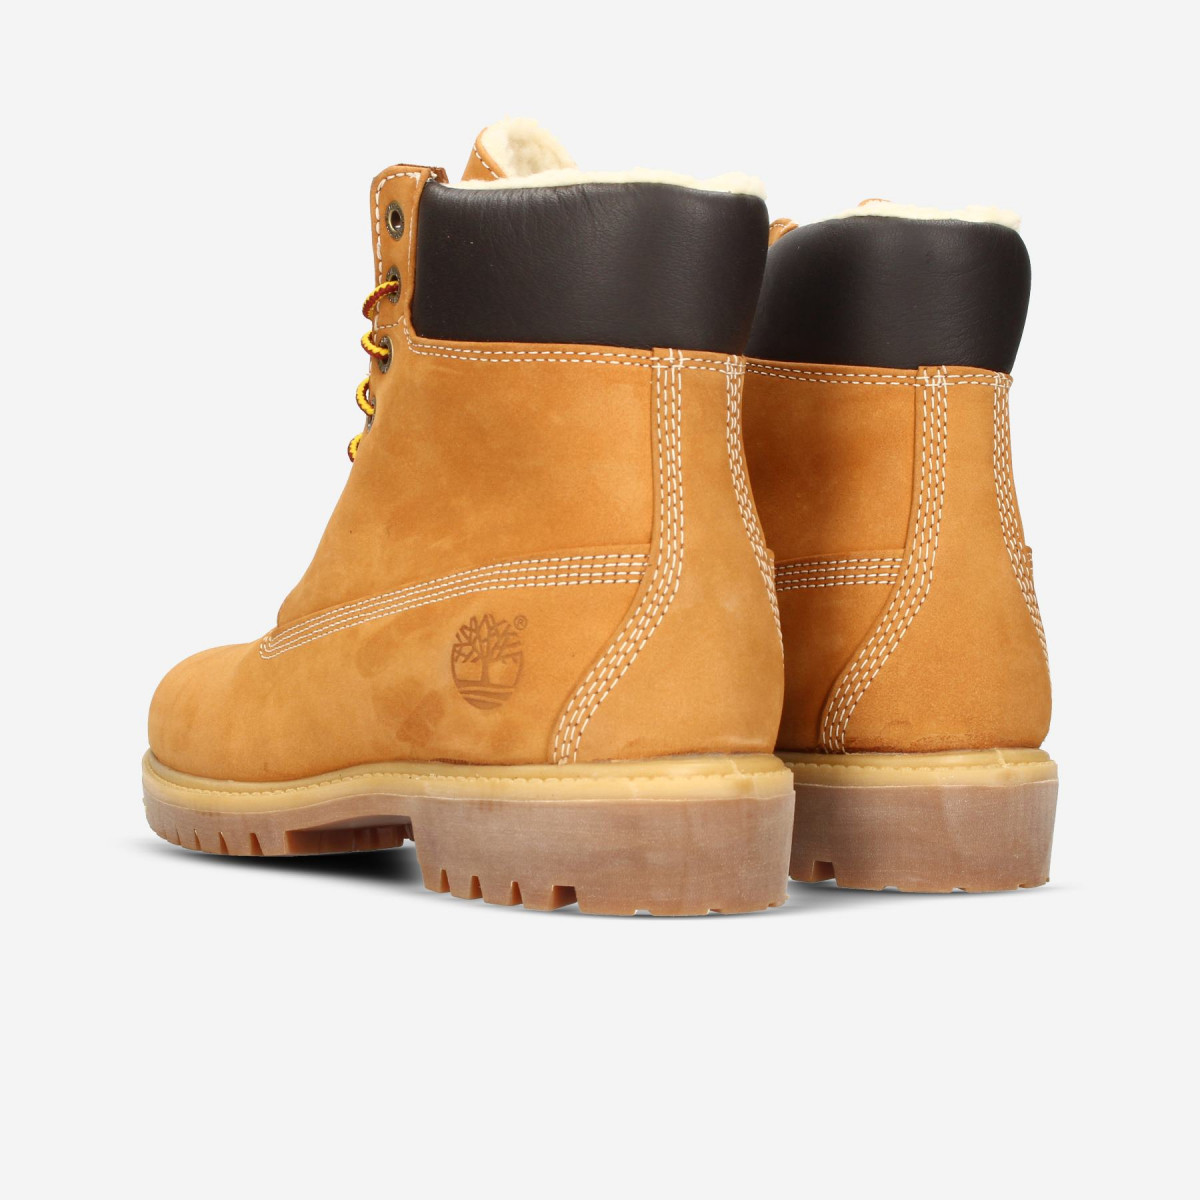 Timberland 6 Inch Fur Lined Boots